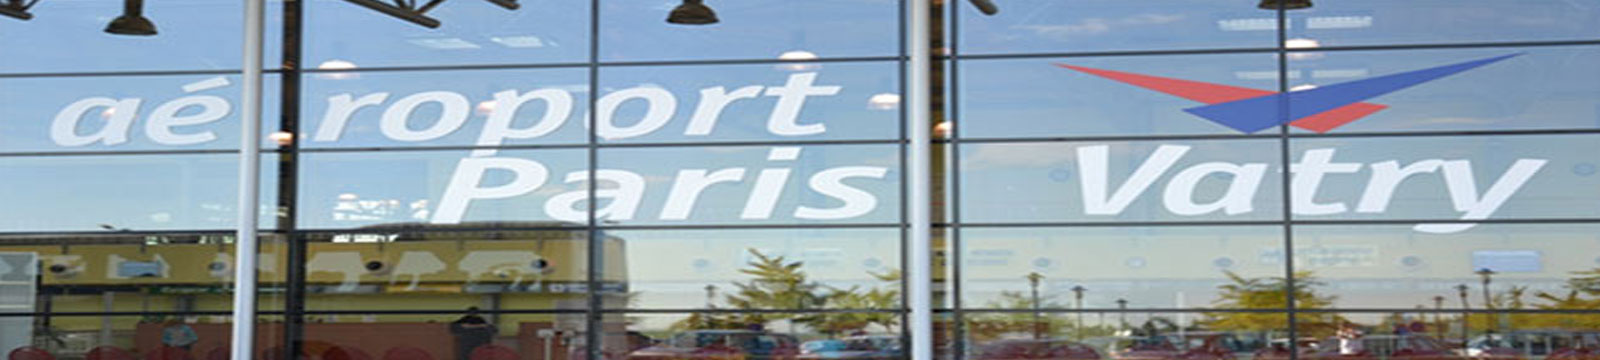 Aeroport Paris Varty